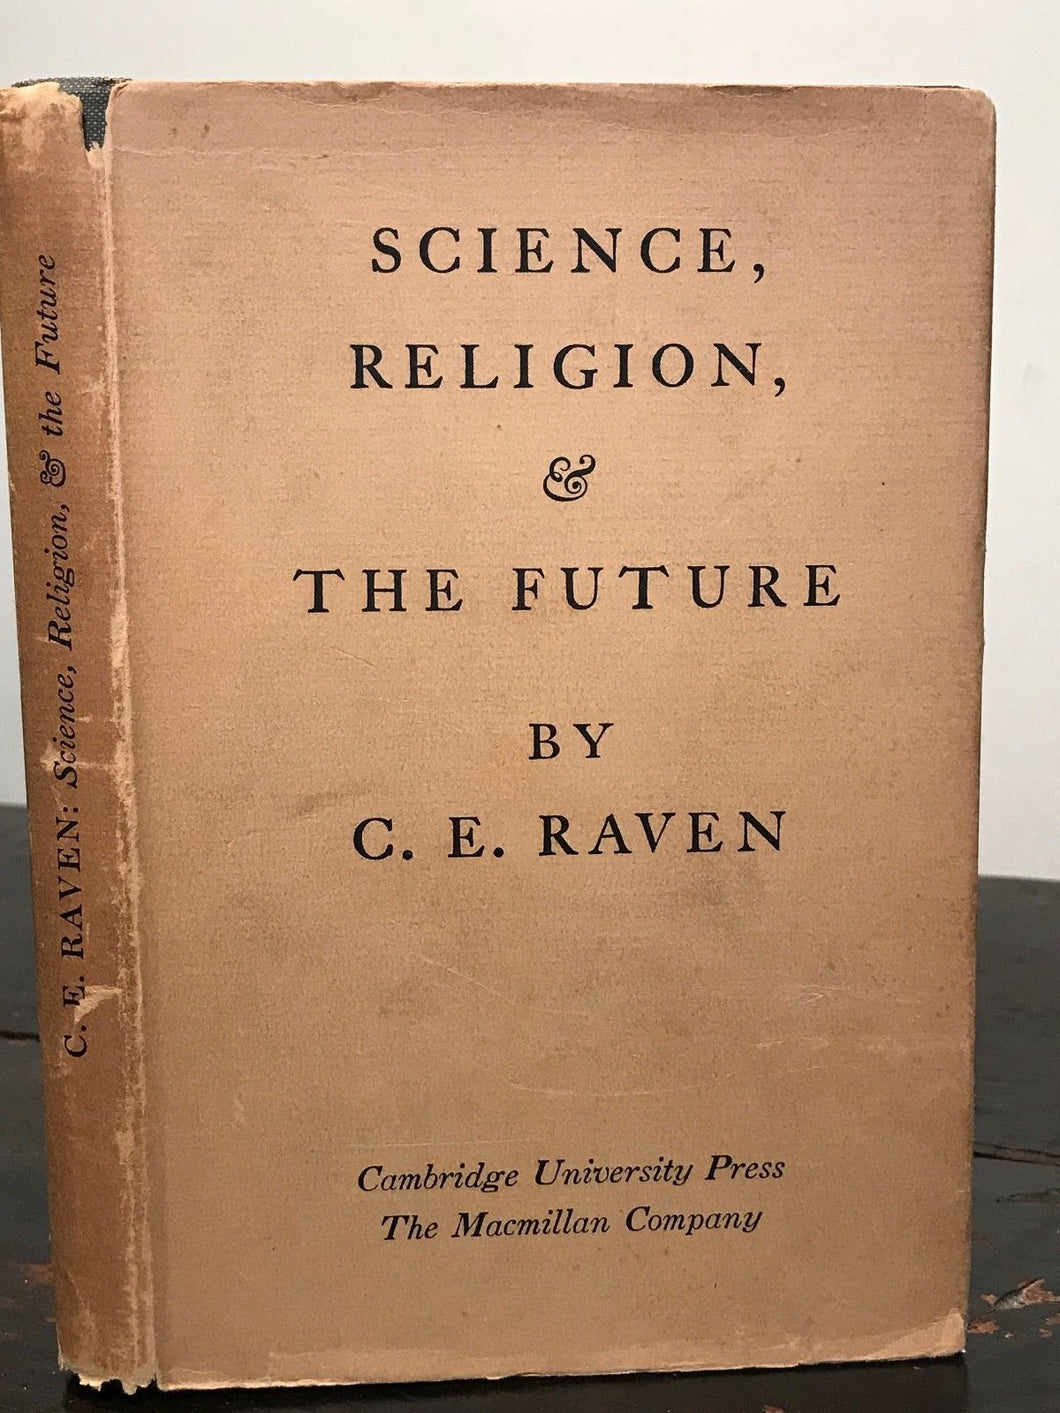 SCIENCE, RELIGION, AND THE FUTURE - Raven, 1943 - 8 Lectures, Religious Study